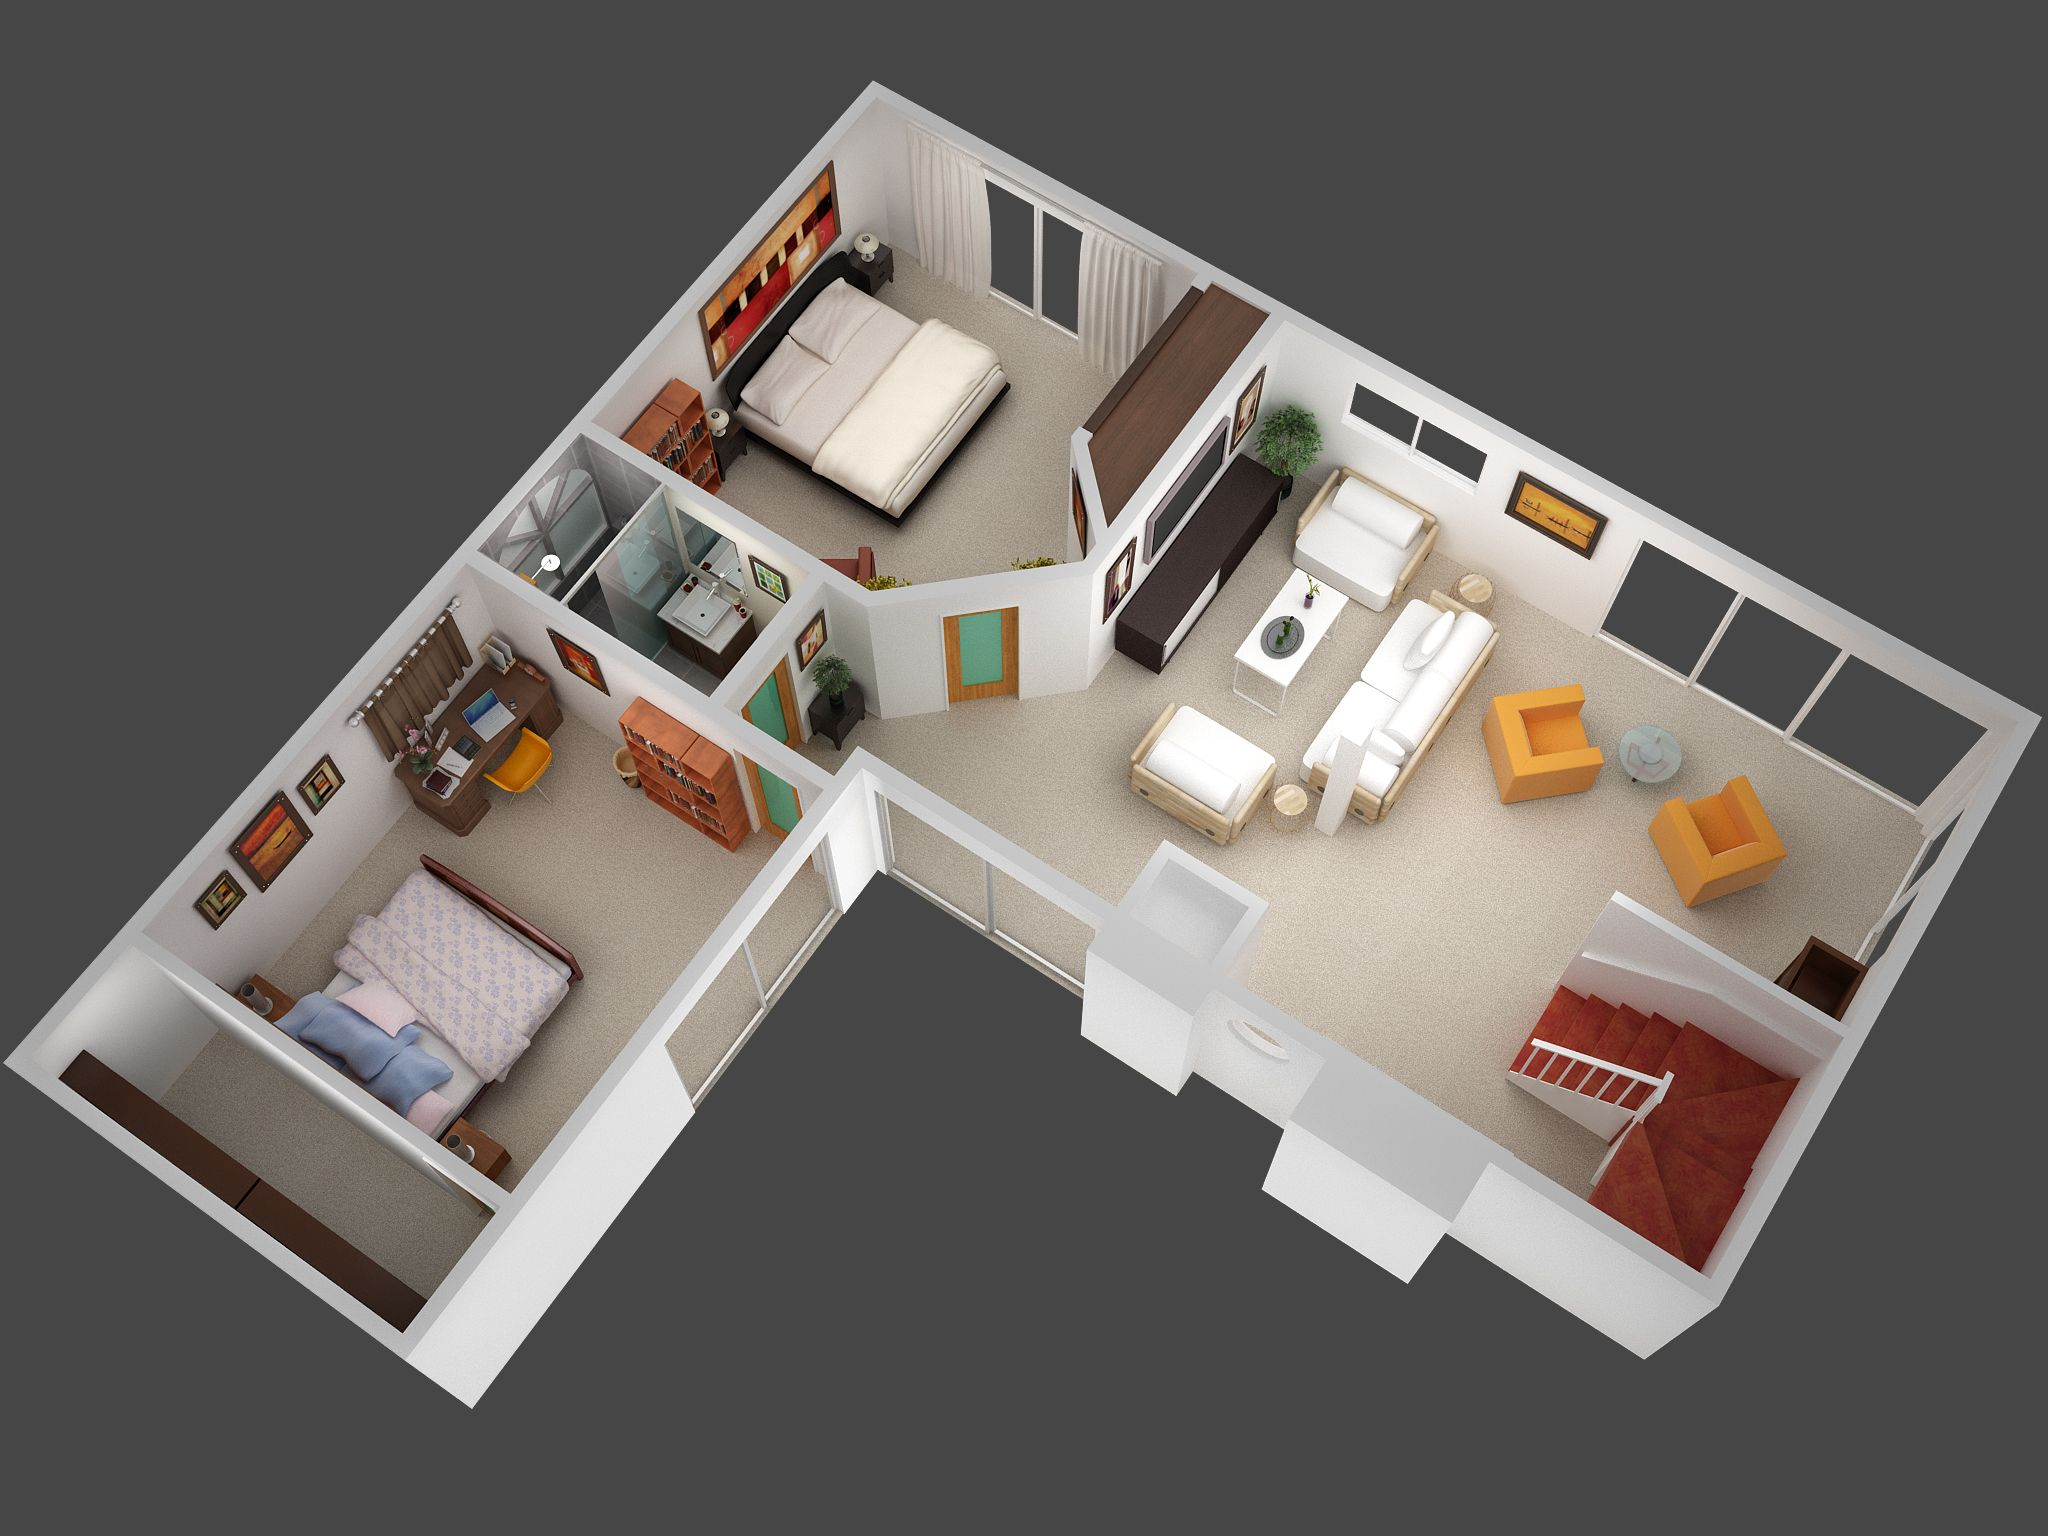 3d House Plans 26813d_floor_plan sjpg 3d Mansion Floor Plans 3d Plan View Render Of Unit 5 Jpg